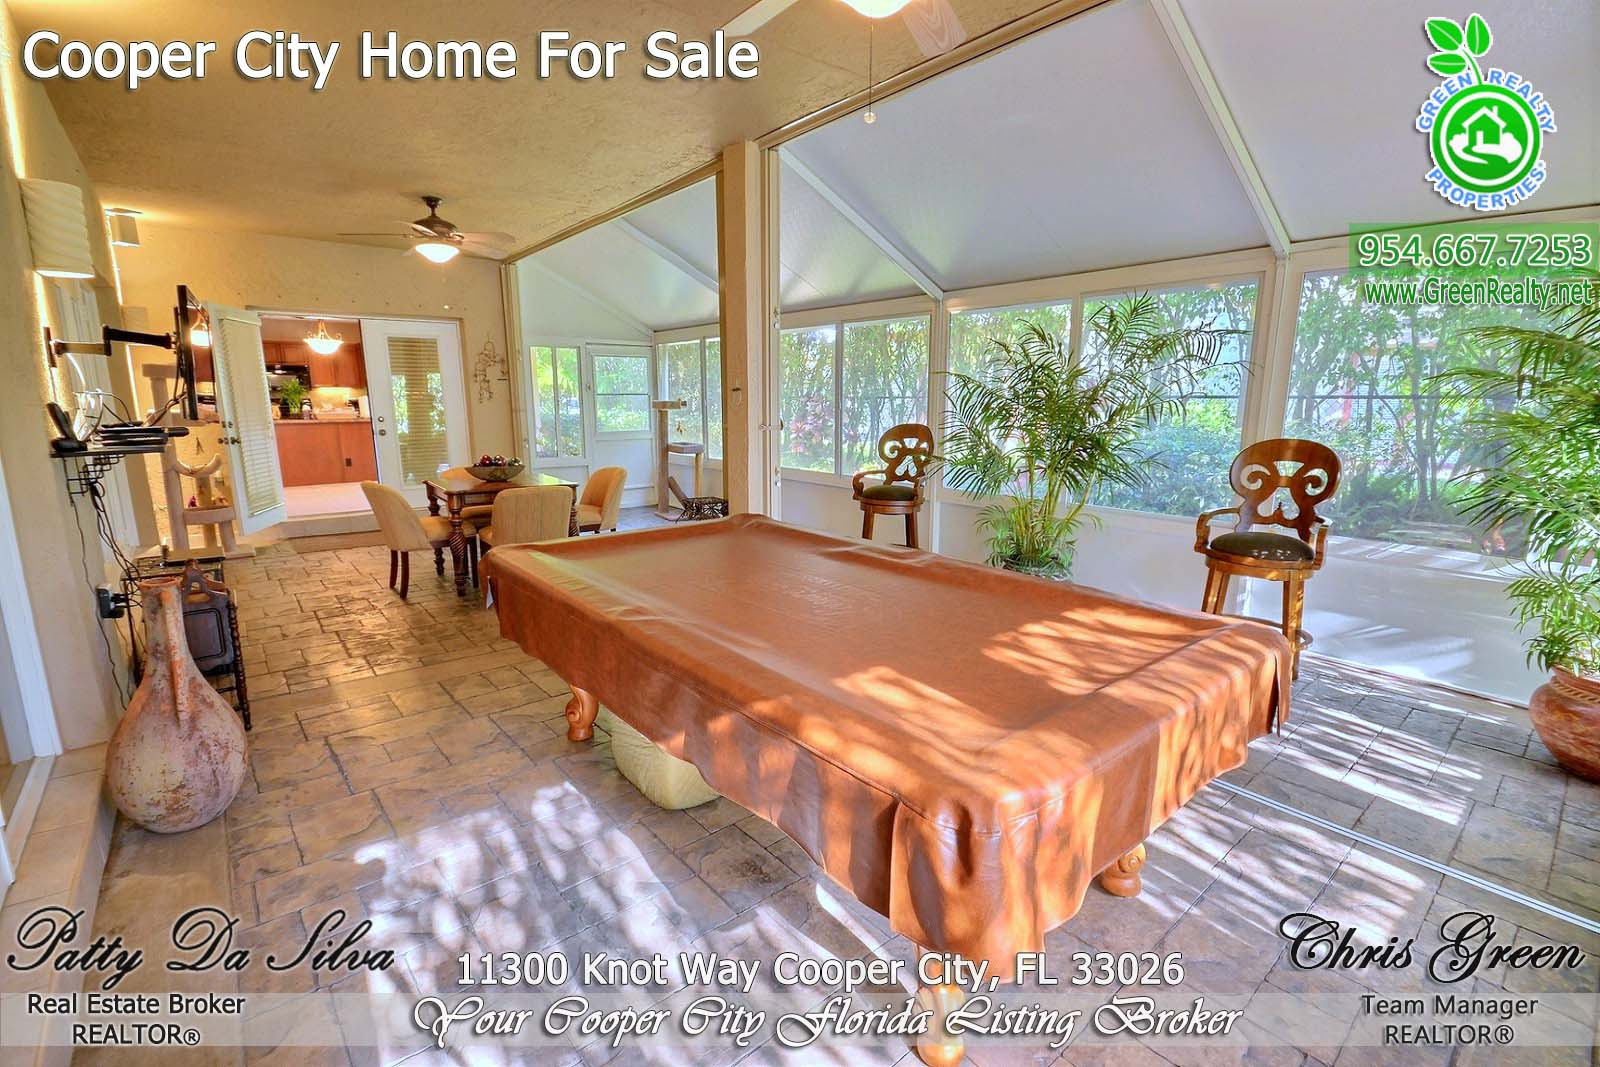 46 Rock Creek Cooper City Homes For Sale (4)